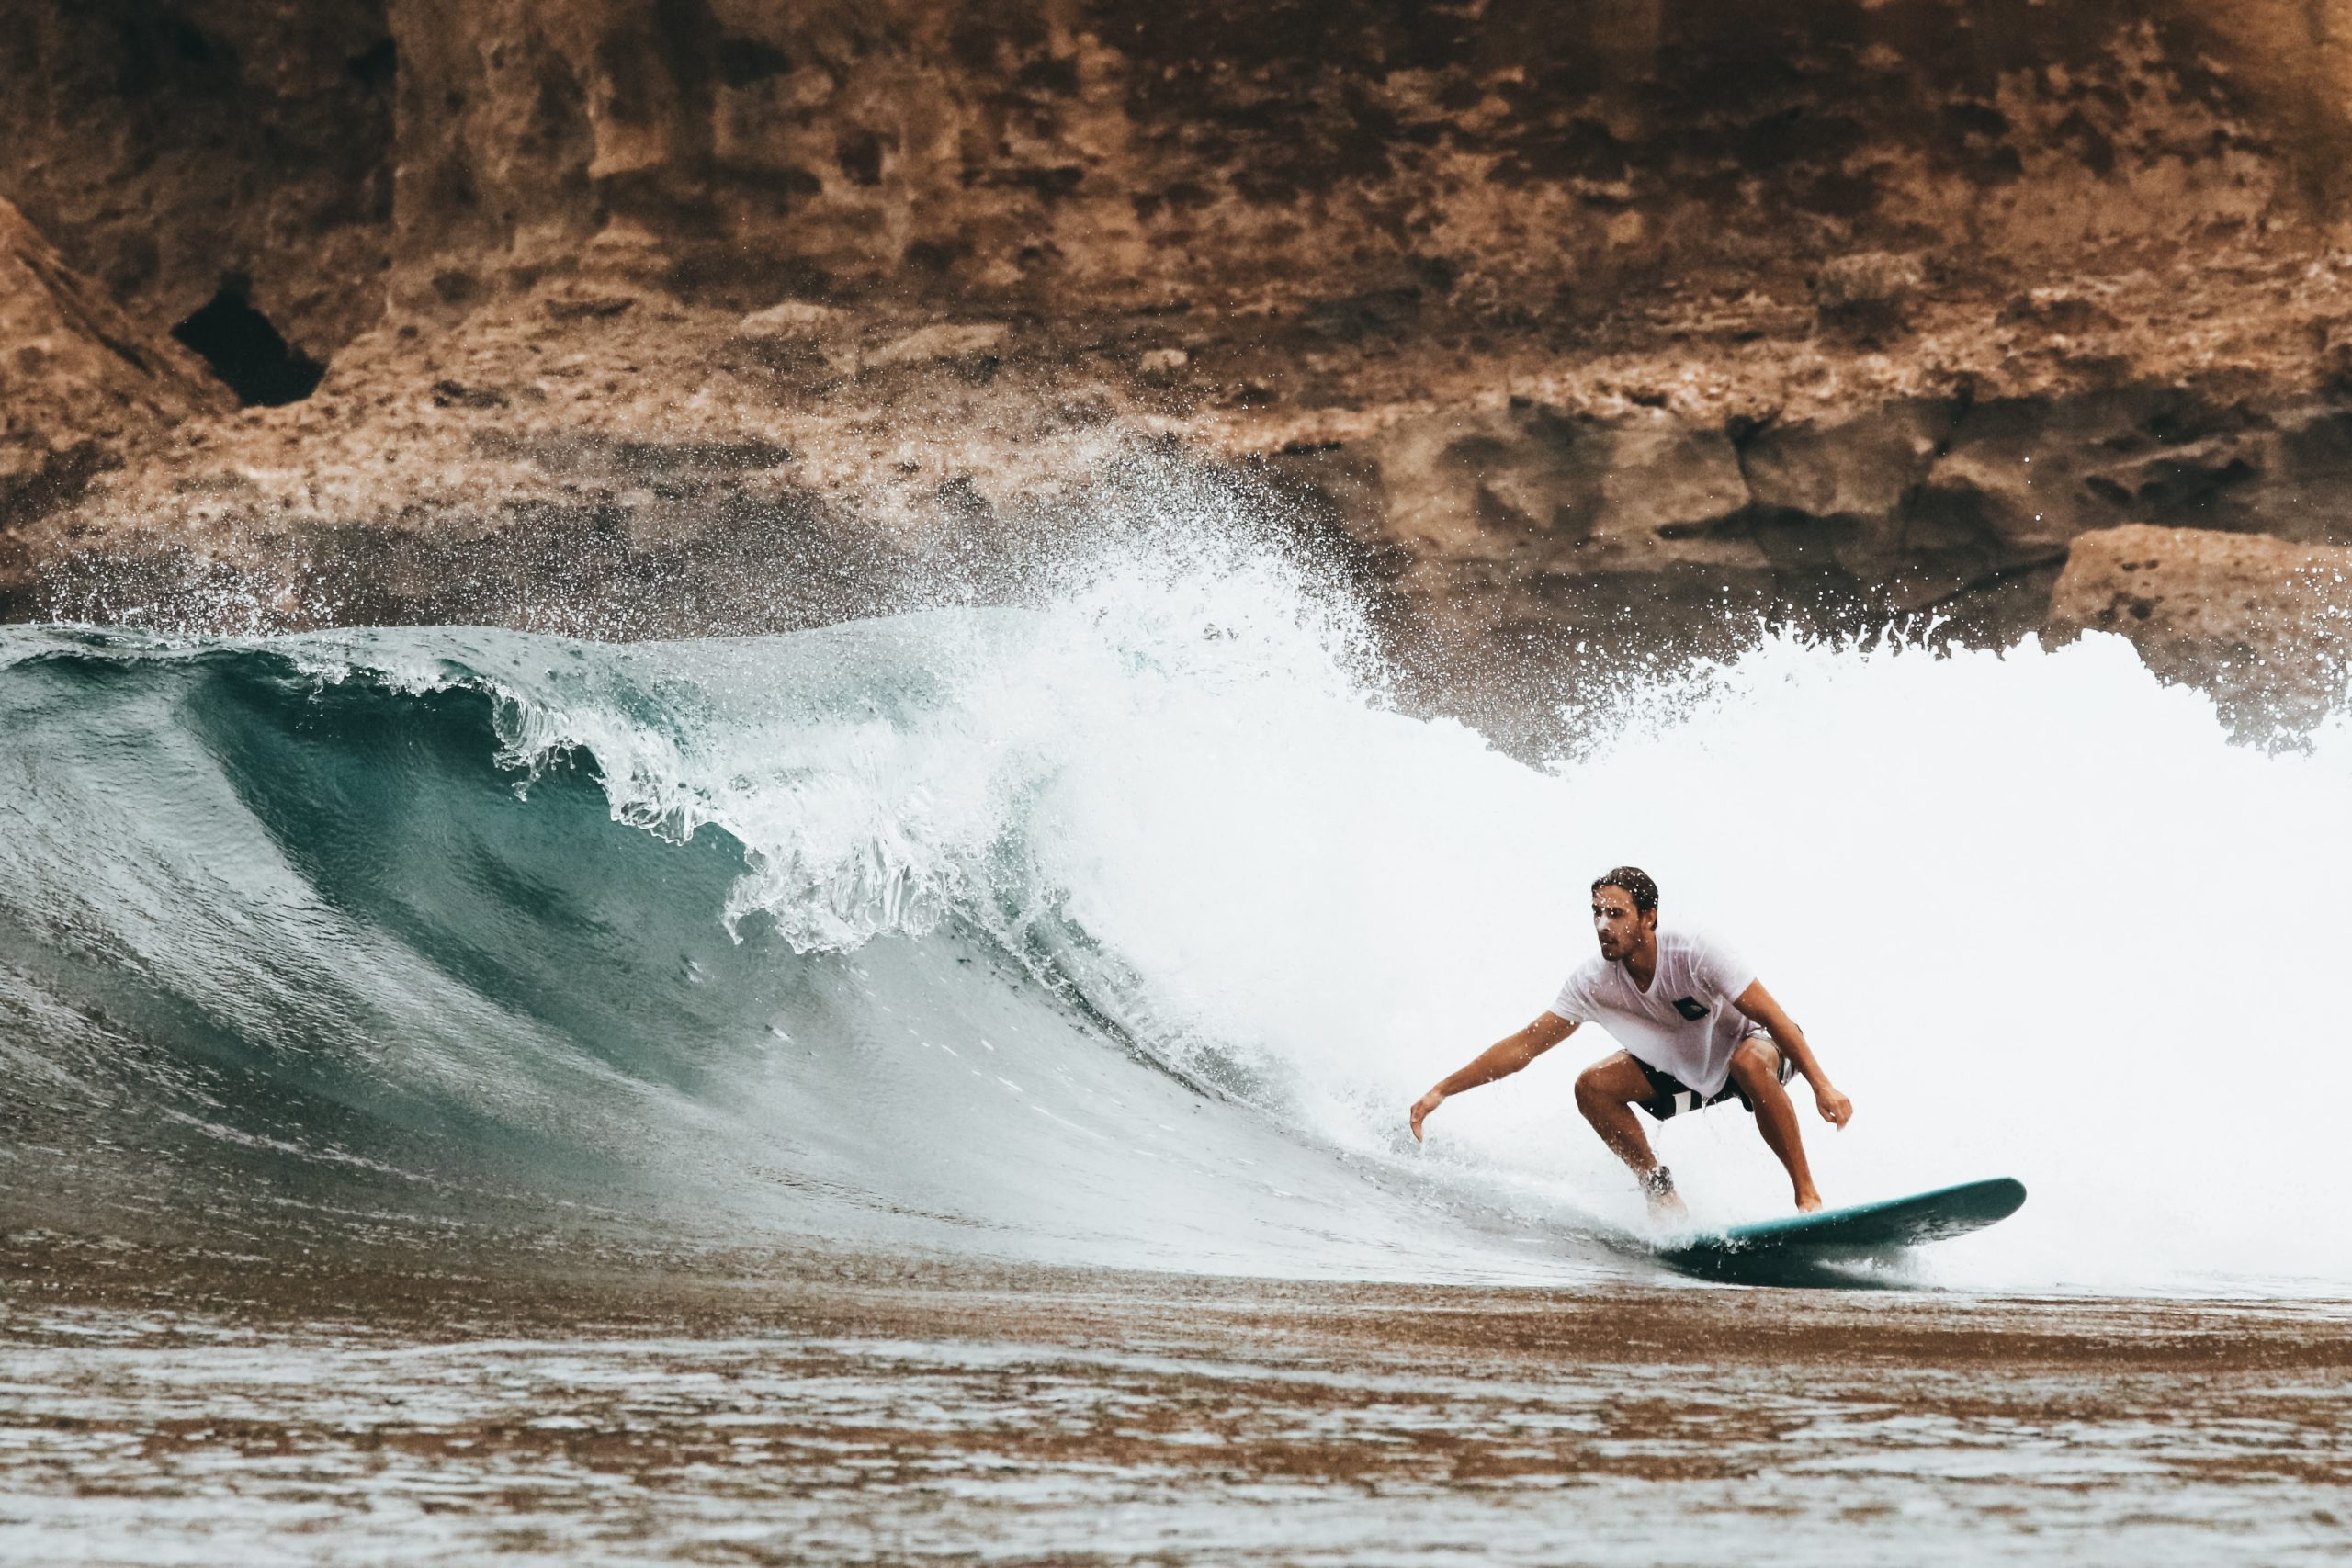 Surfing Tactics: Some Of The Best Tactics You Should Know About